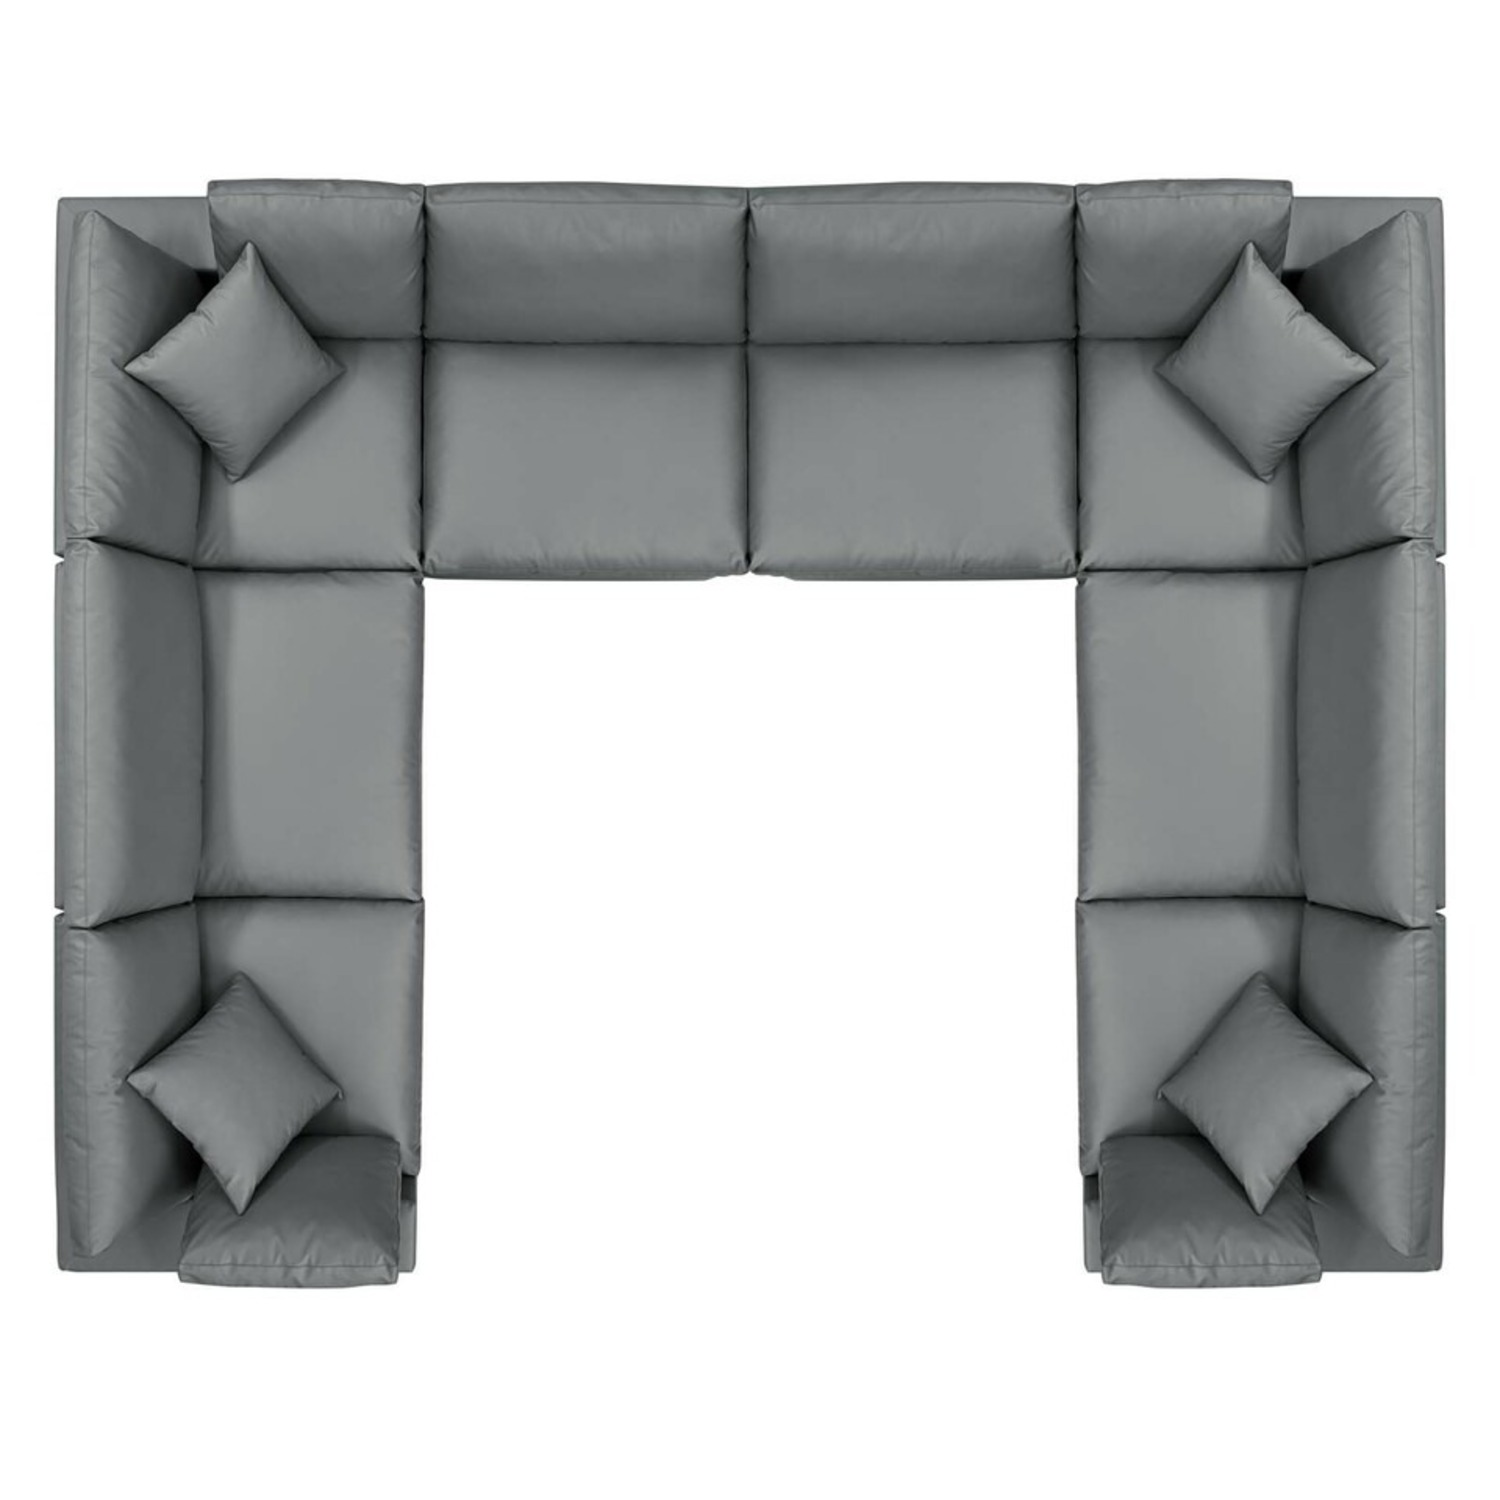 8-Piece Sectional Sofa In Gray Vegan Leather - image-1